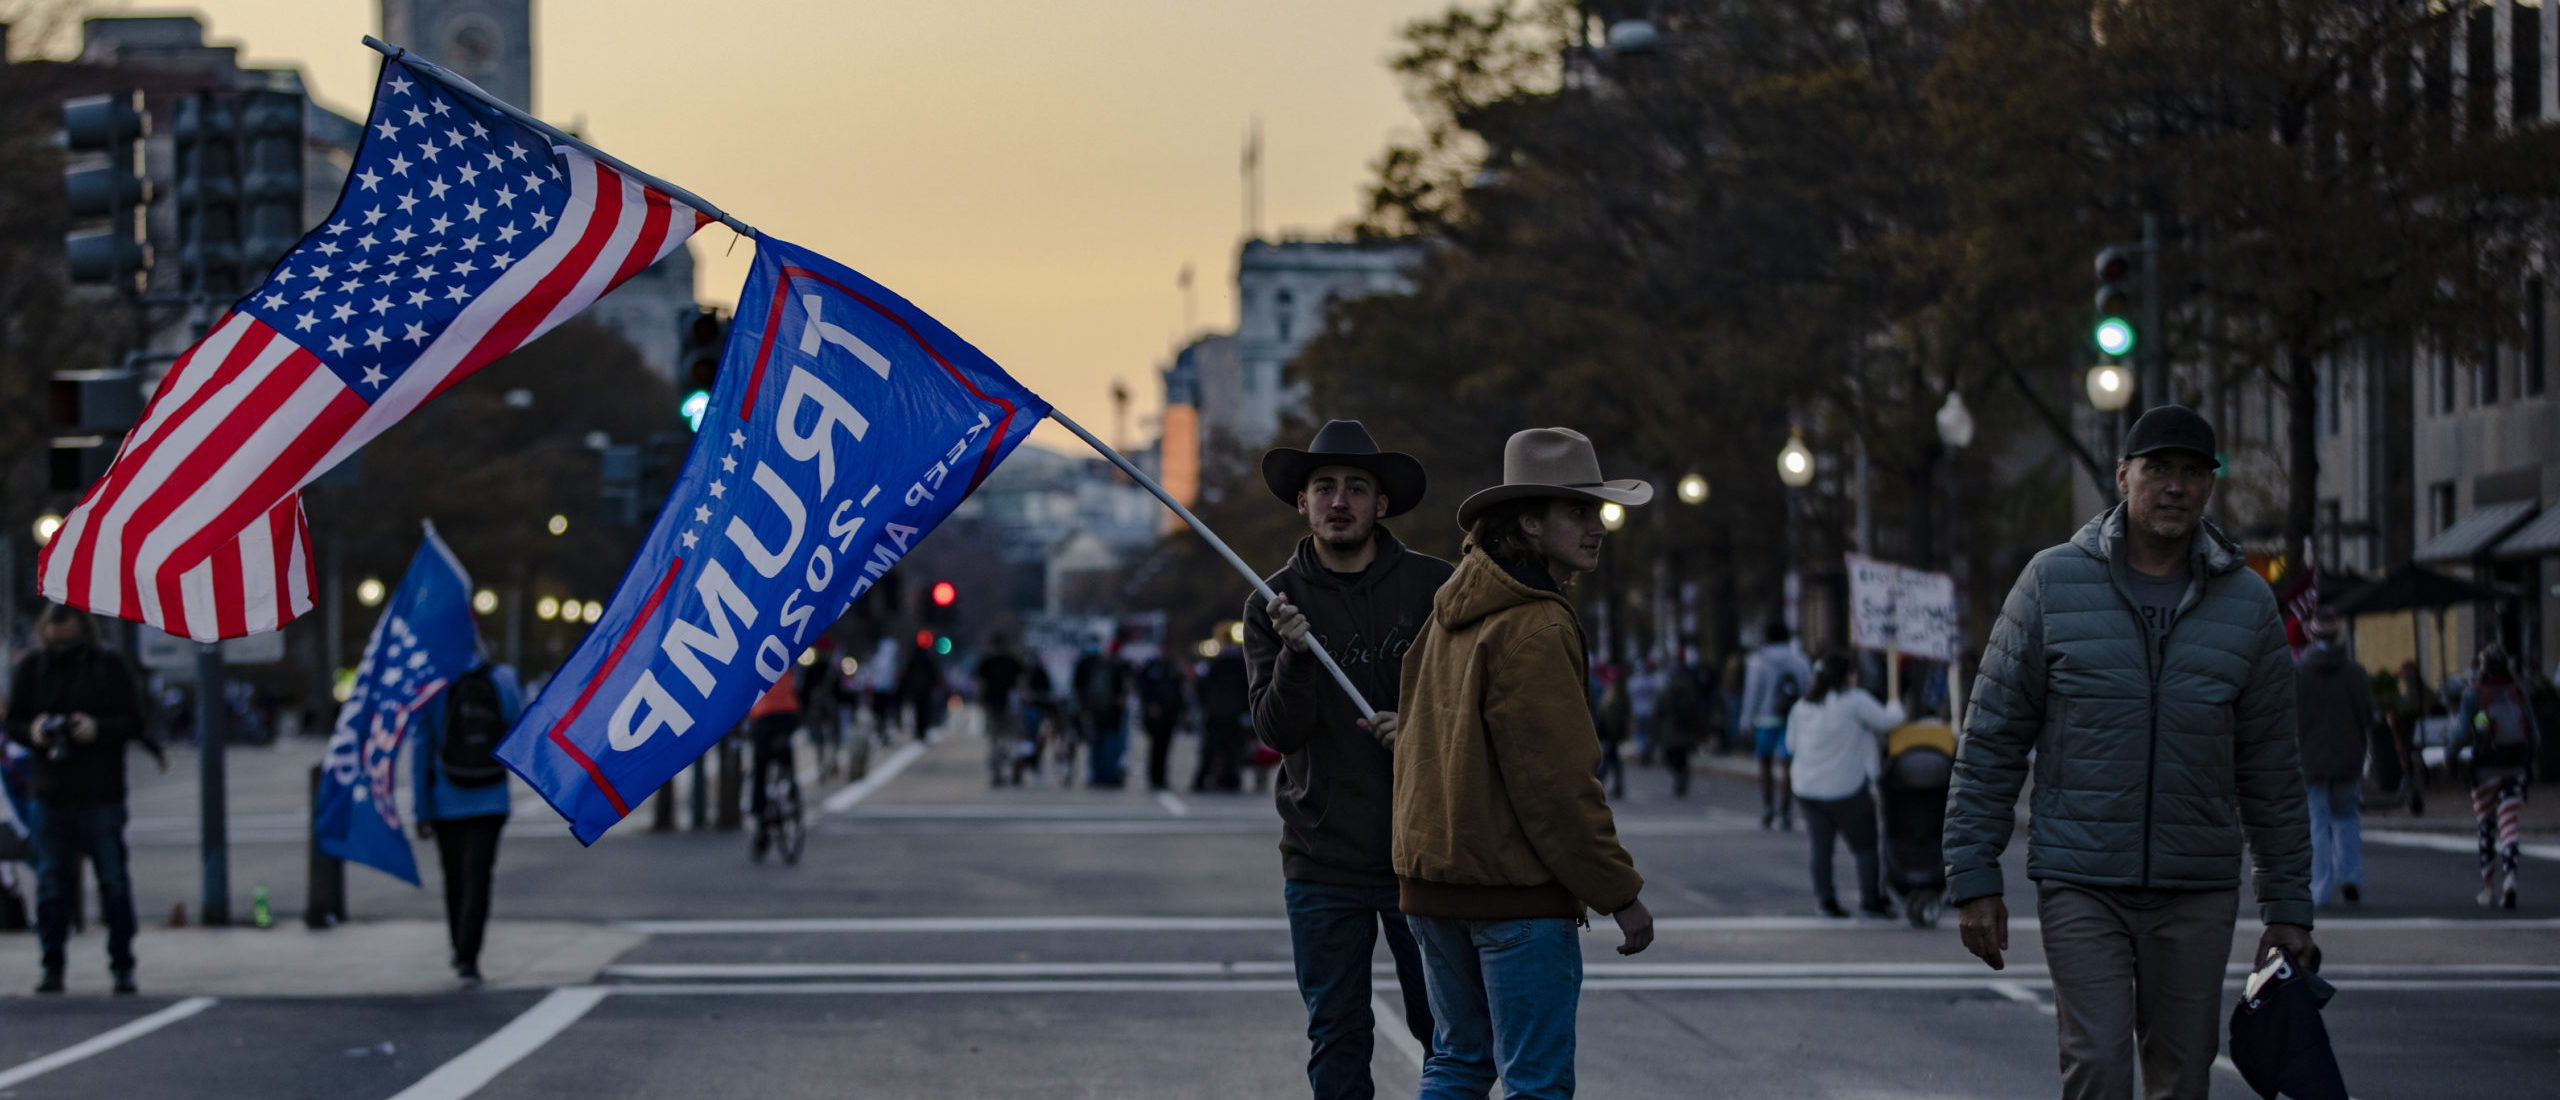 """WASHINGTON, DC - NOVEMBER 14: People walk in the middle of the closed down Pennsylvania Avenue as the """"Million MAGA March"""" comes to a close on November 14, 2020 in Washington, DC. Various pro-Trump groups gathered in DC today for the """"Million MAGA March"""" to protest the results of the 2020 presidential election. (Photo by Samuel Corum/Getty Images)"""